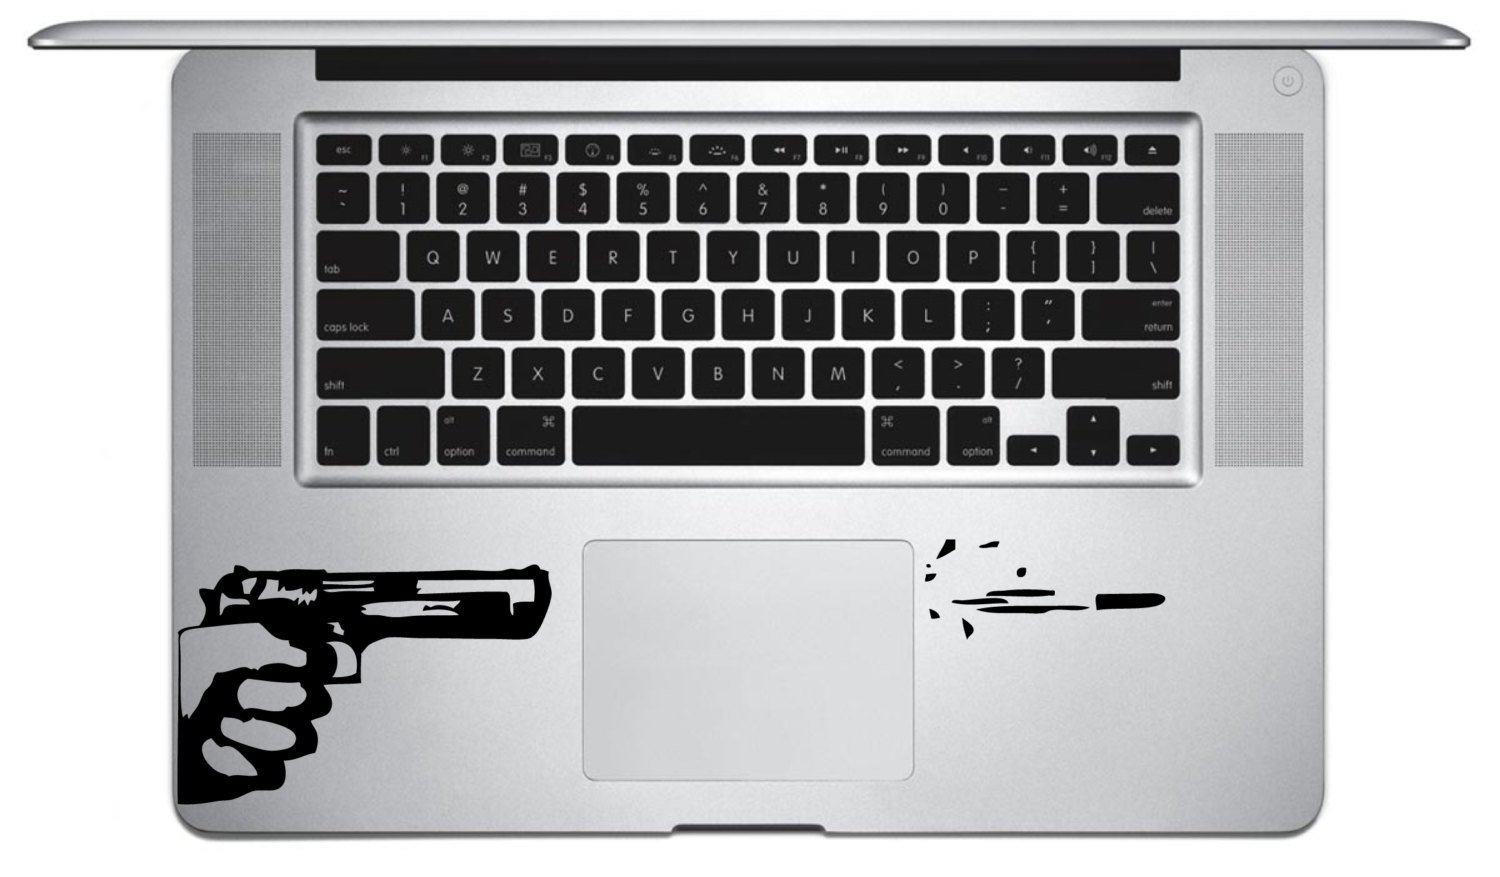 Amazon gun and bullet symbol keypad iphone ipad macbook decal amazon gun and bullet symbol keypad iphone ipad macbook decal skin sticker laptop computers accessories biocorpaavc